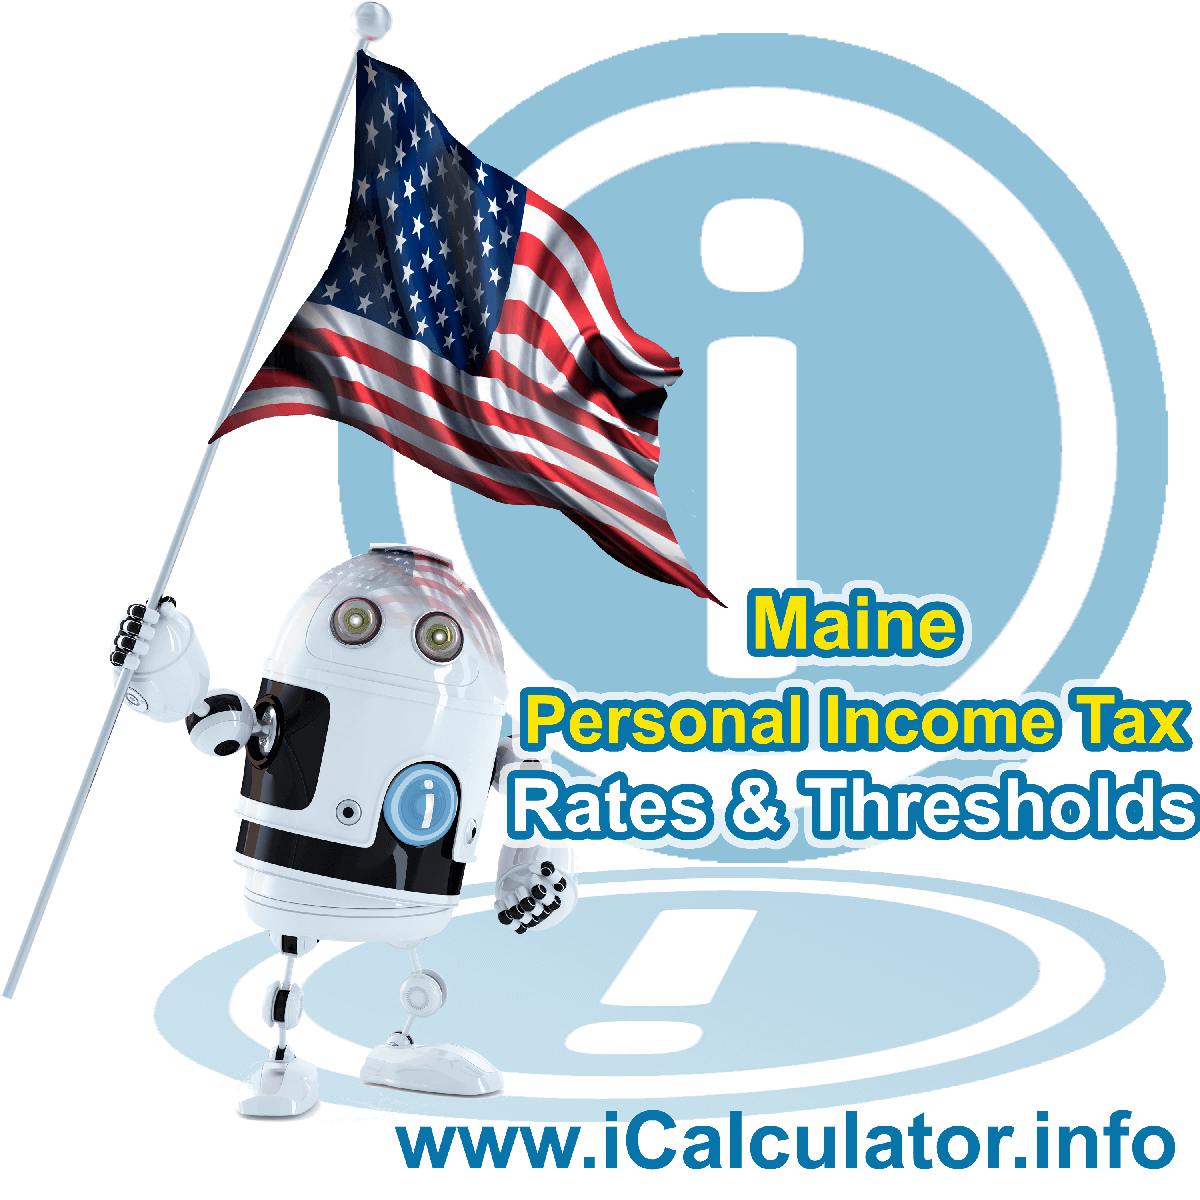 Maine State Tax Tables 2018. This image displays details of the Maine State Tax Tables for the 2018 tax return year which is provided in support of the 2018 US Tax Calculator